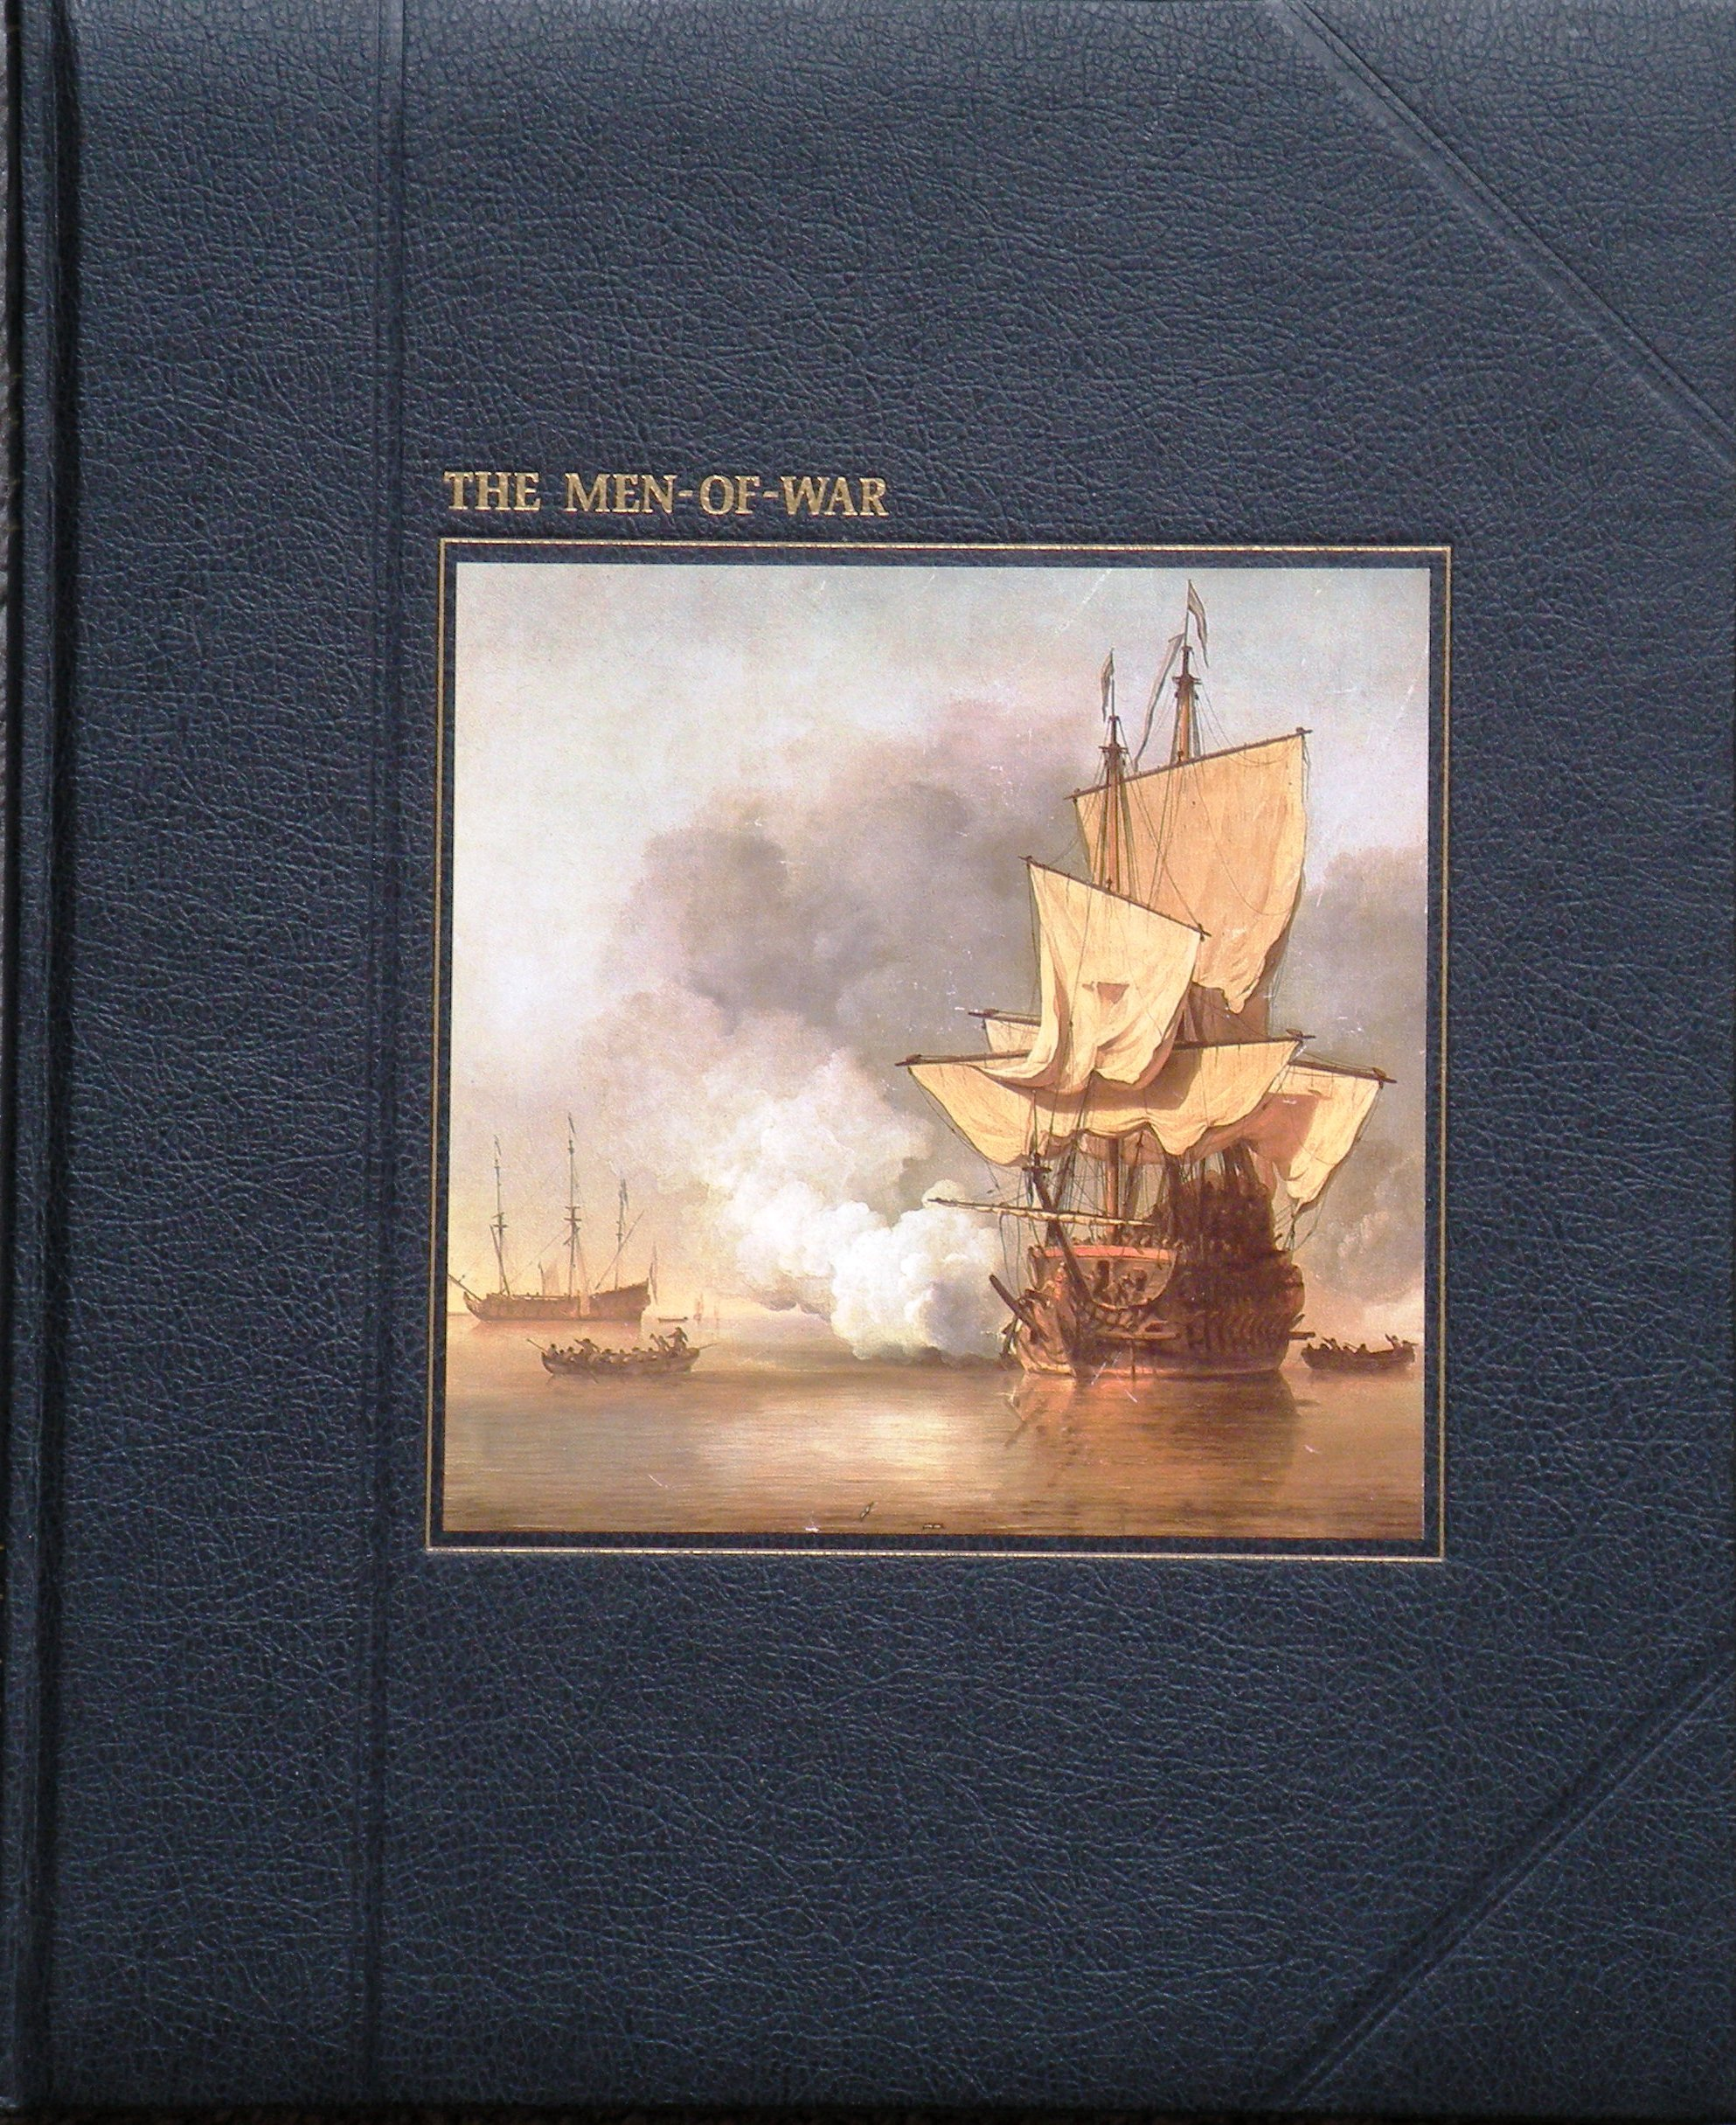 The Seafarers. Time-Life. The Men-of-War